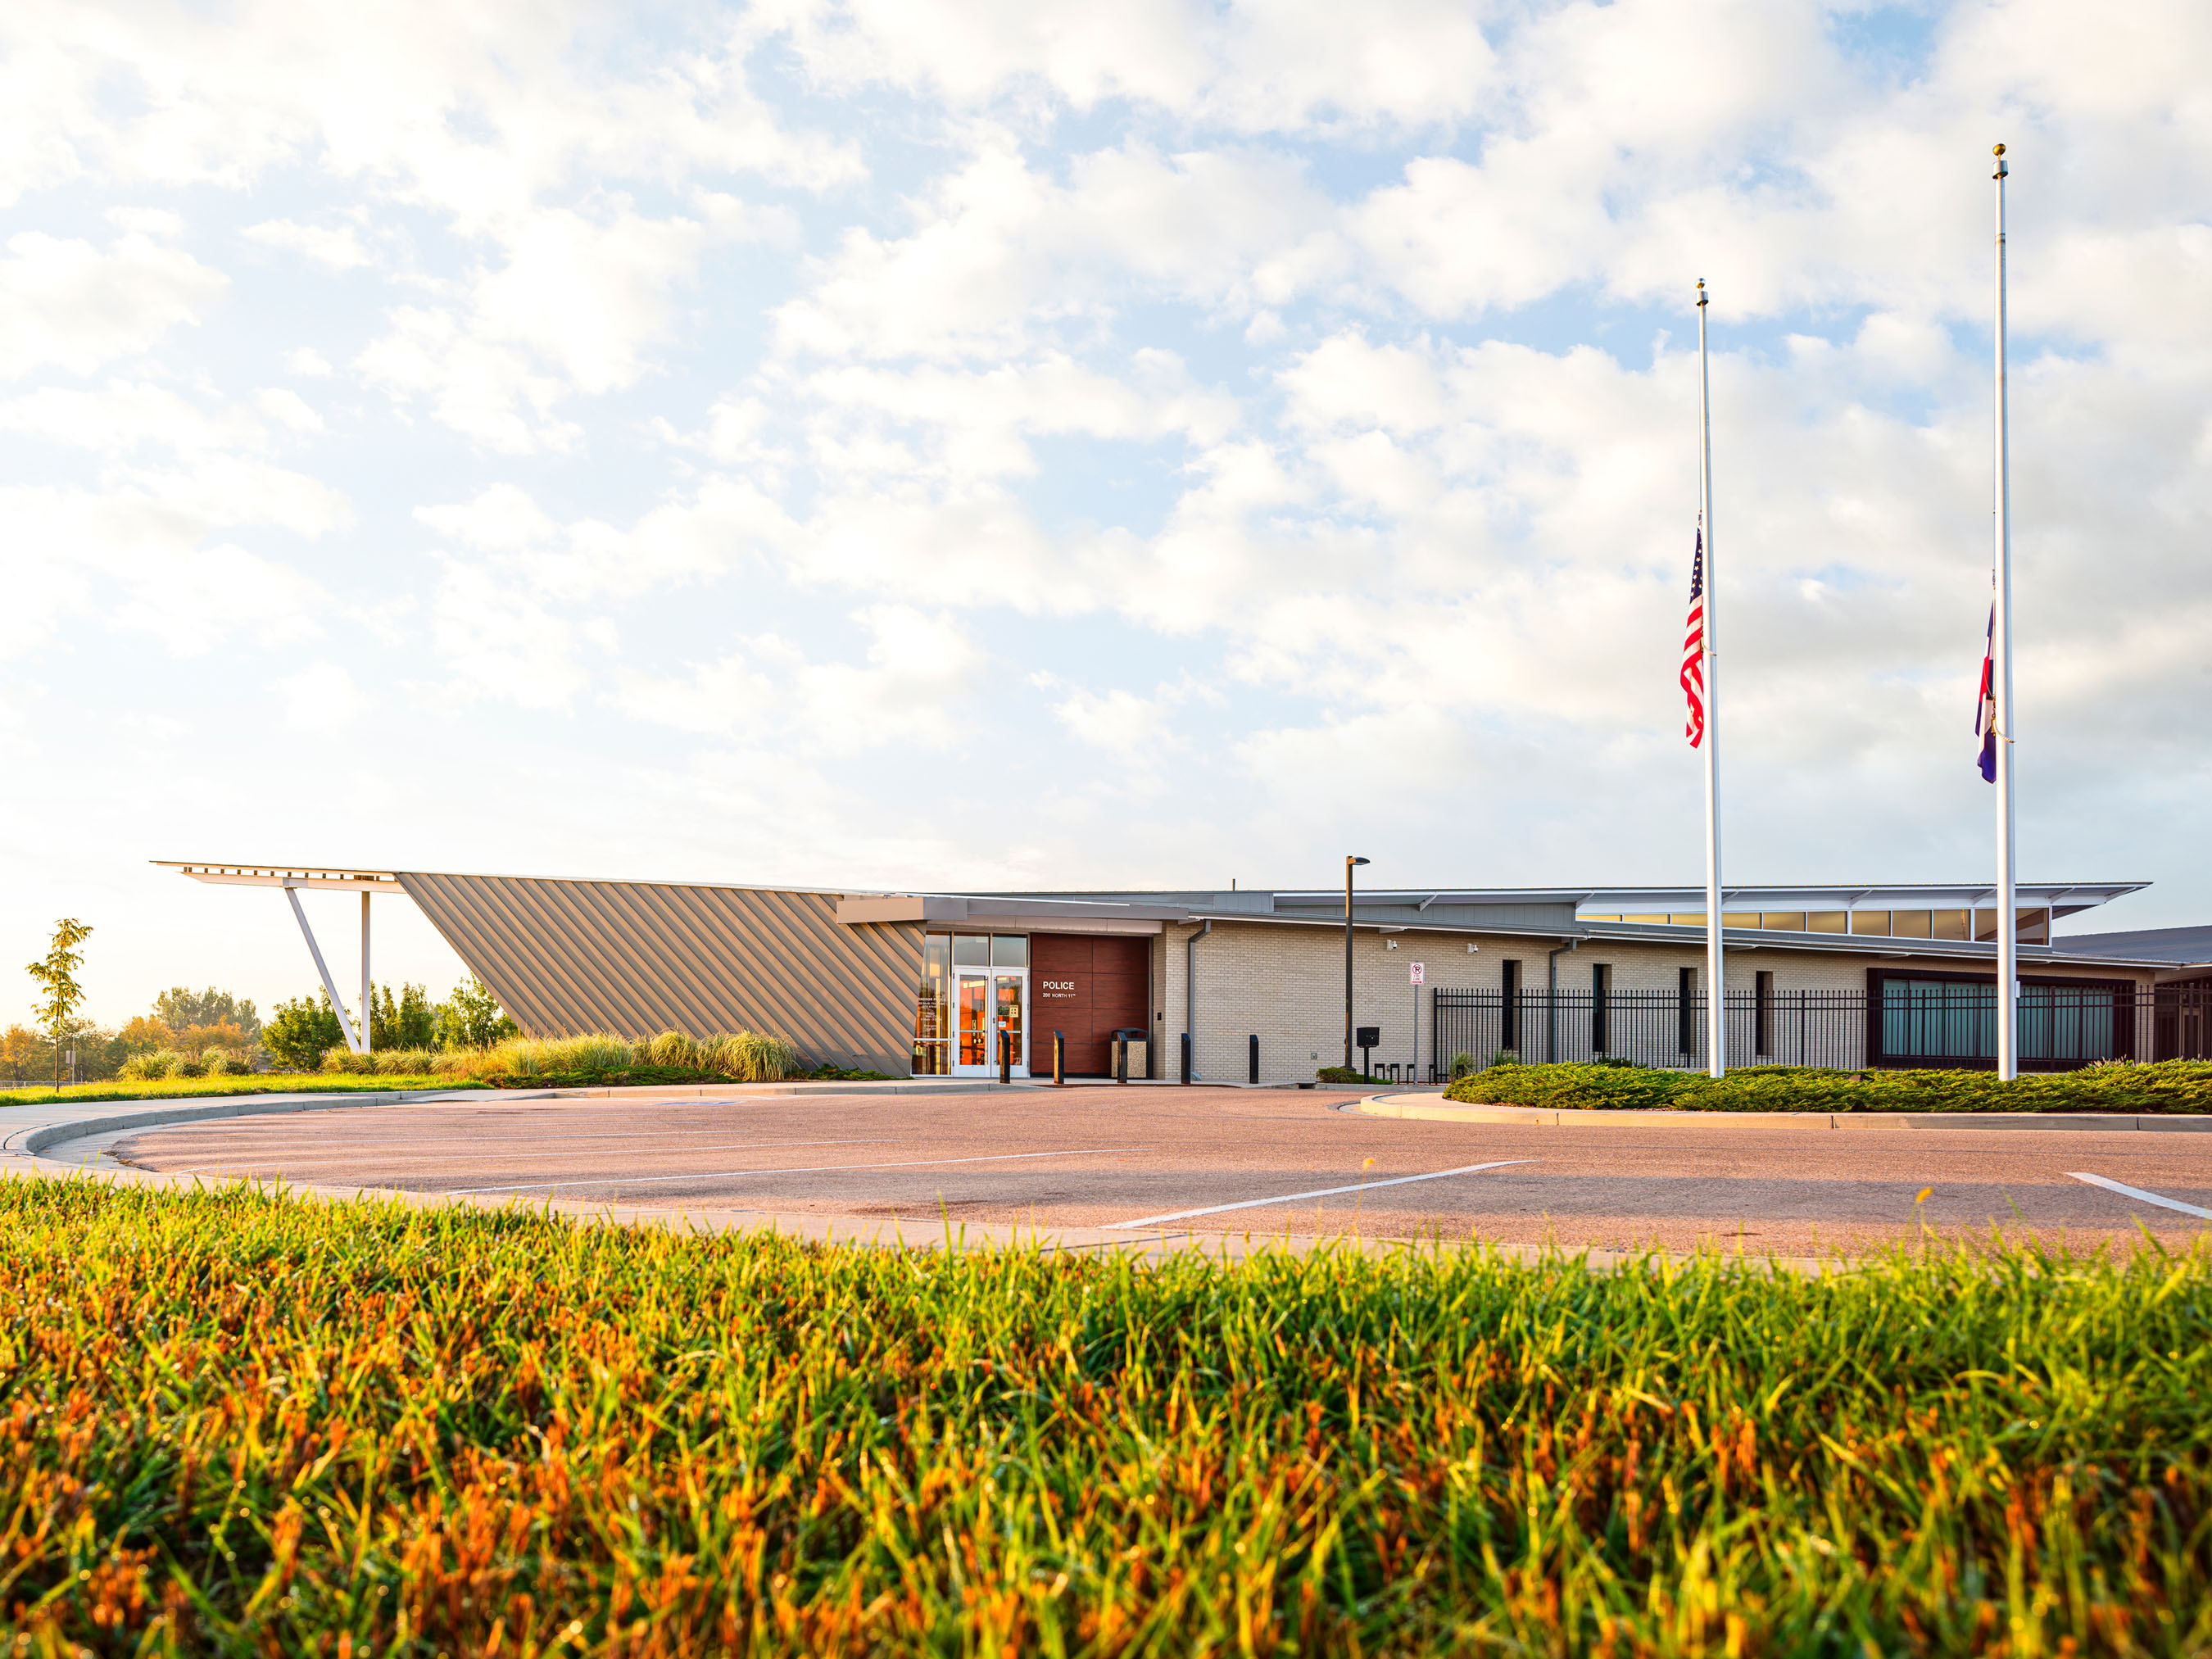 Architecture photography of Windsor Police Station located in Windsor, Colorado.